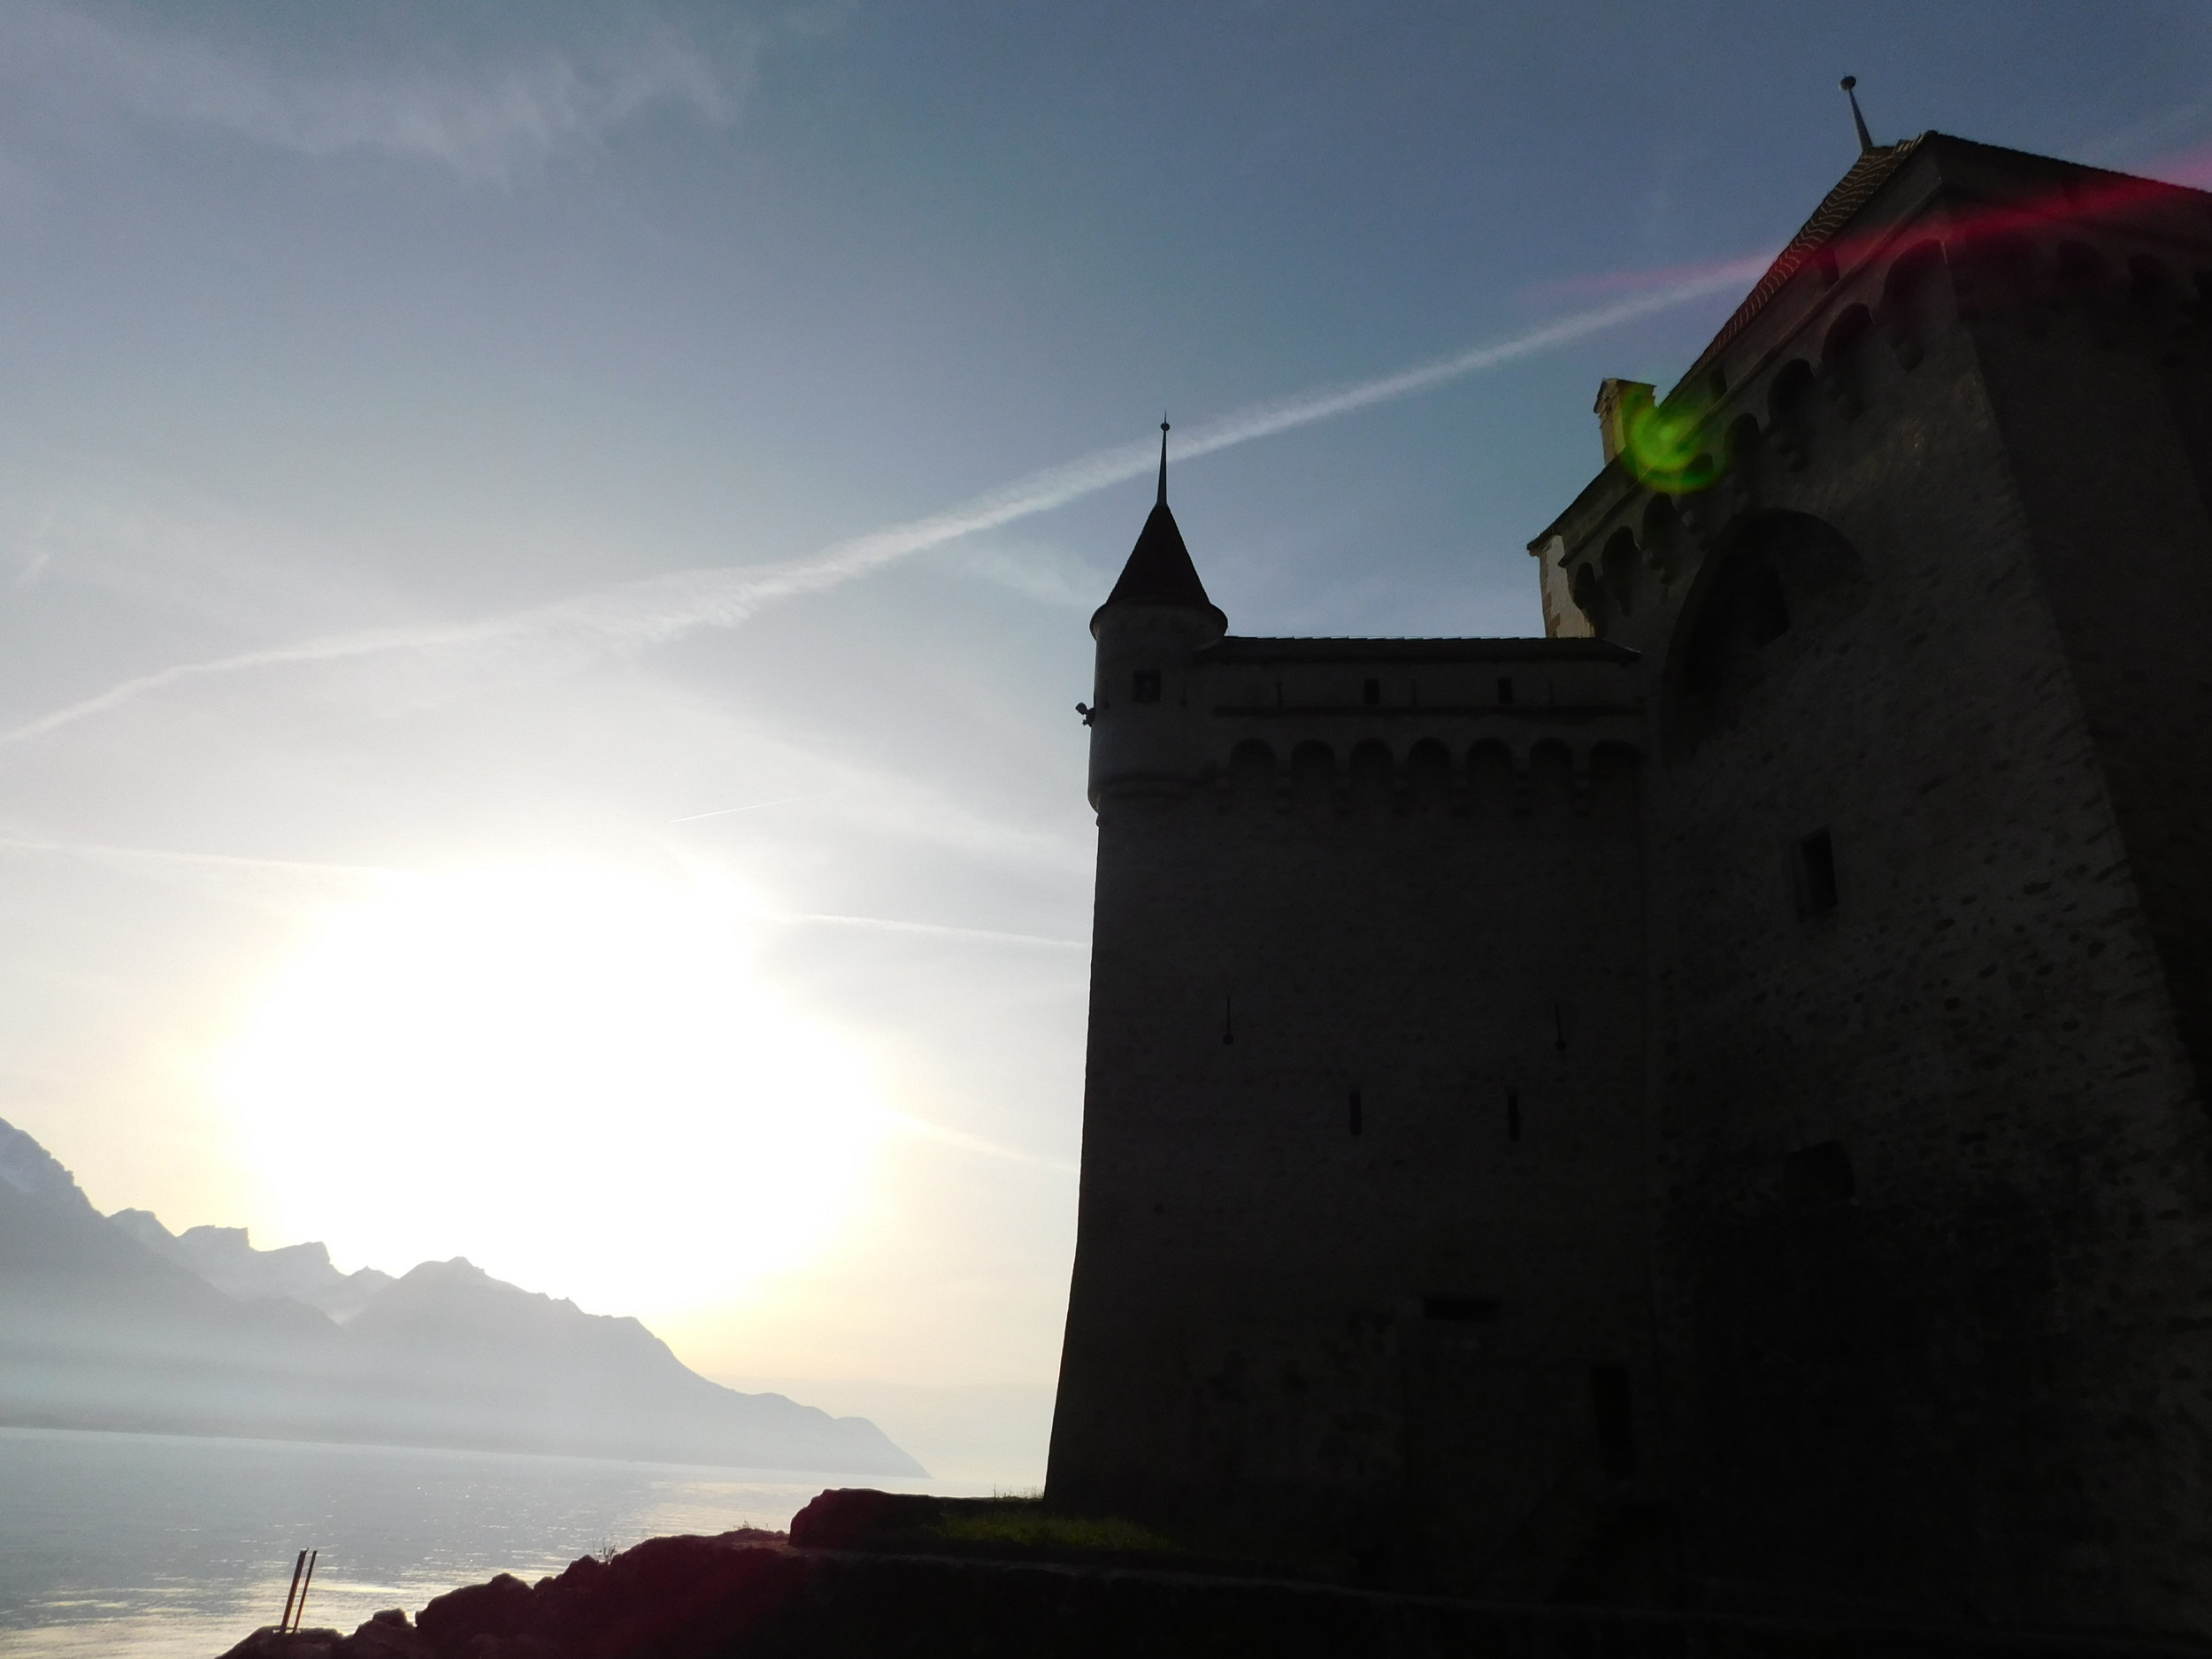 View of the Swiss Castle and the Bay (spot the Alley Cat waving from the window!)